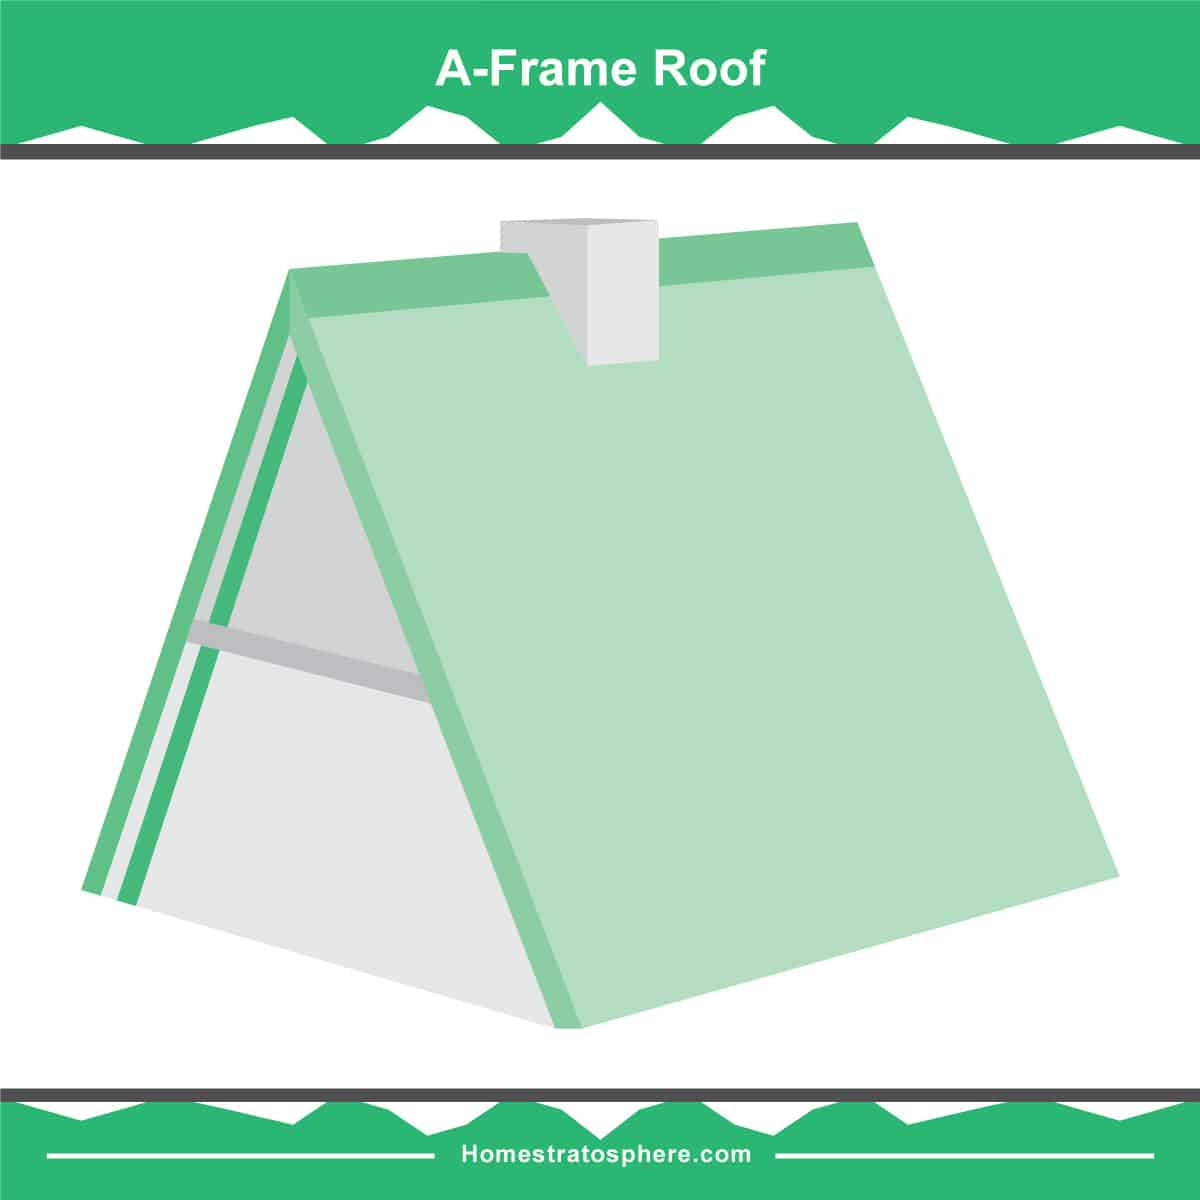 A-frame roof illustration